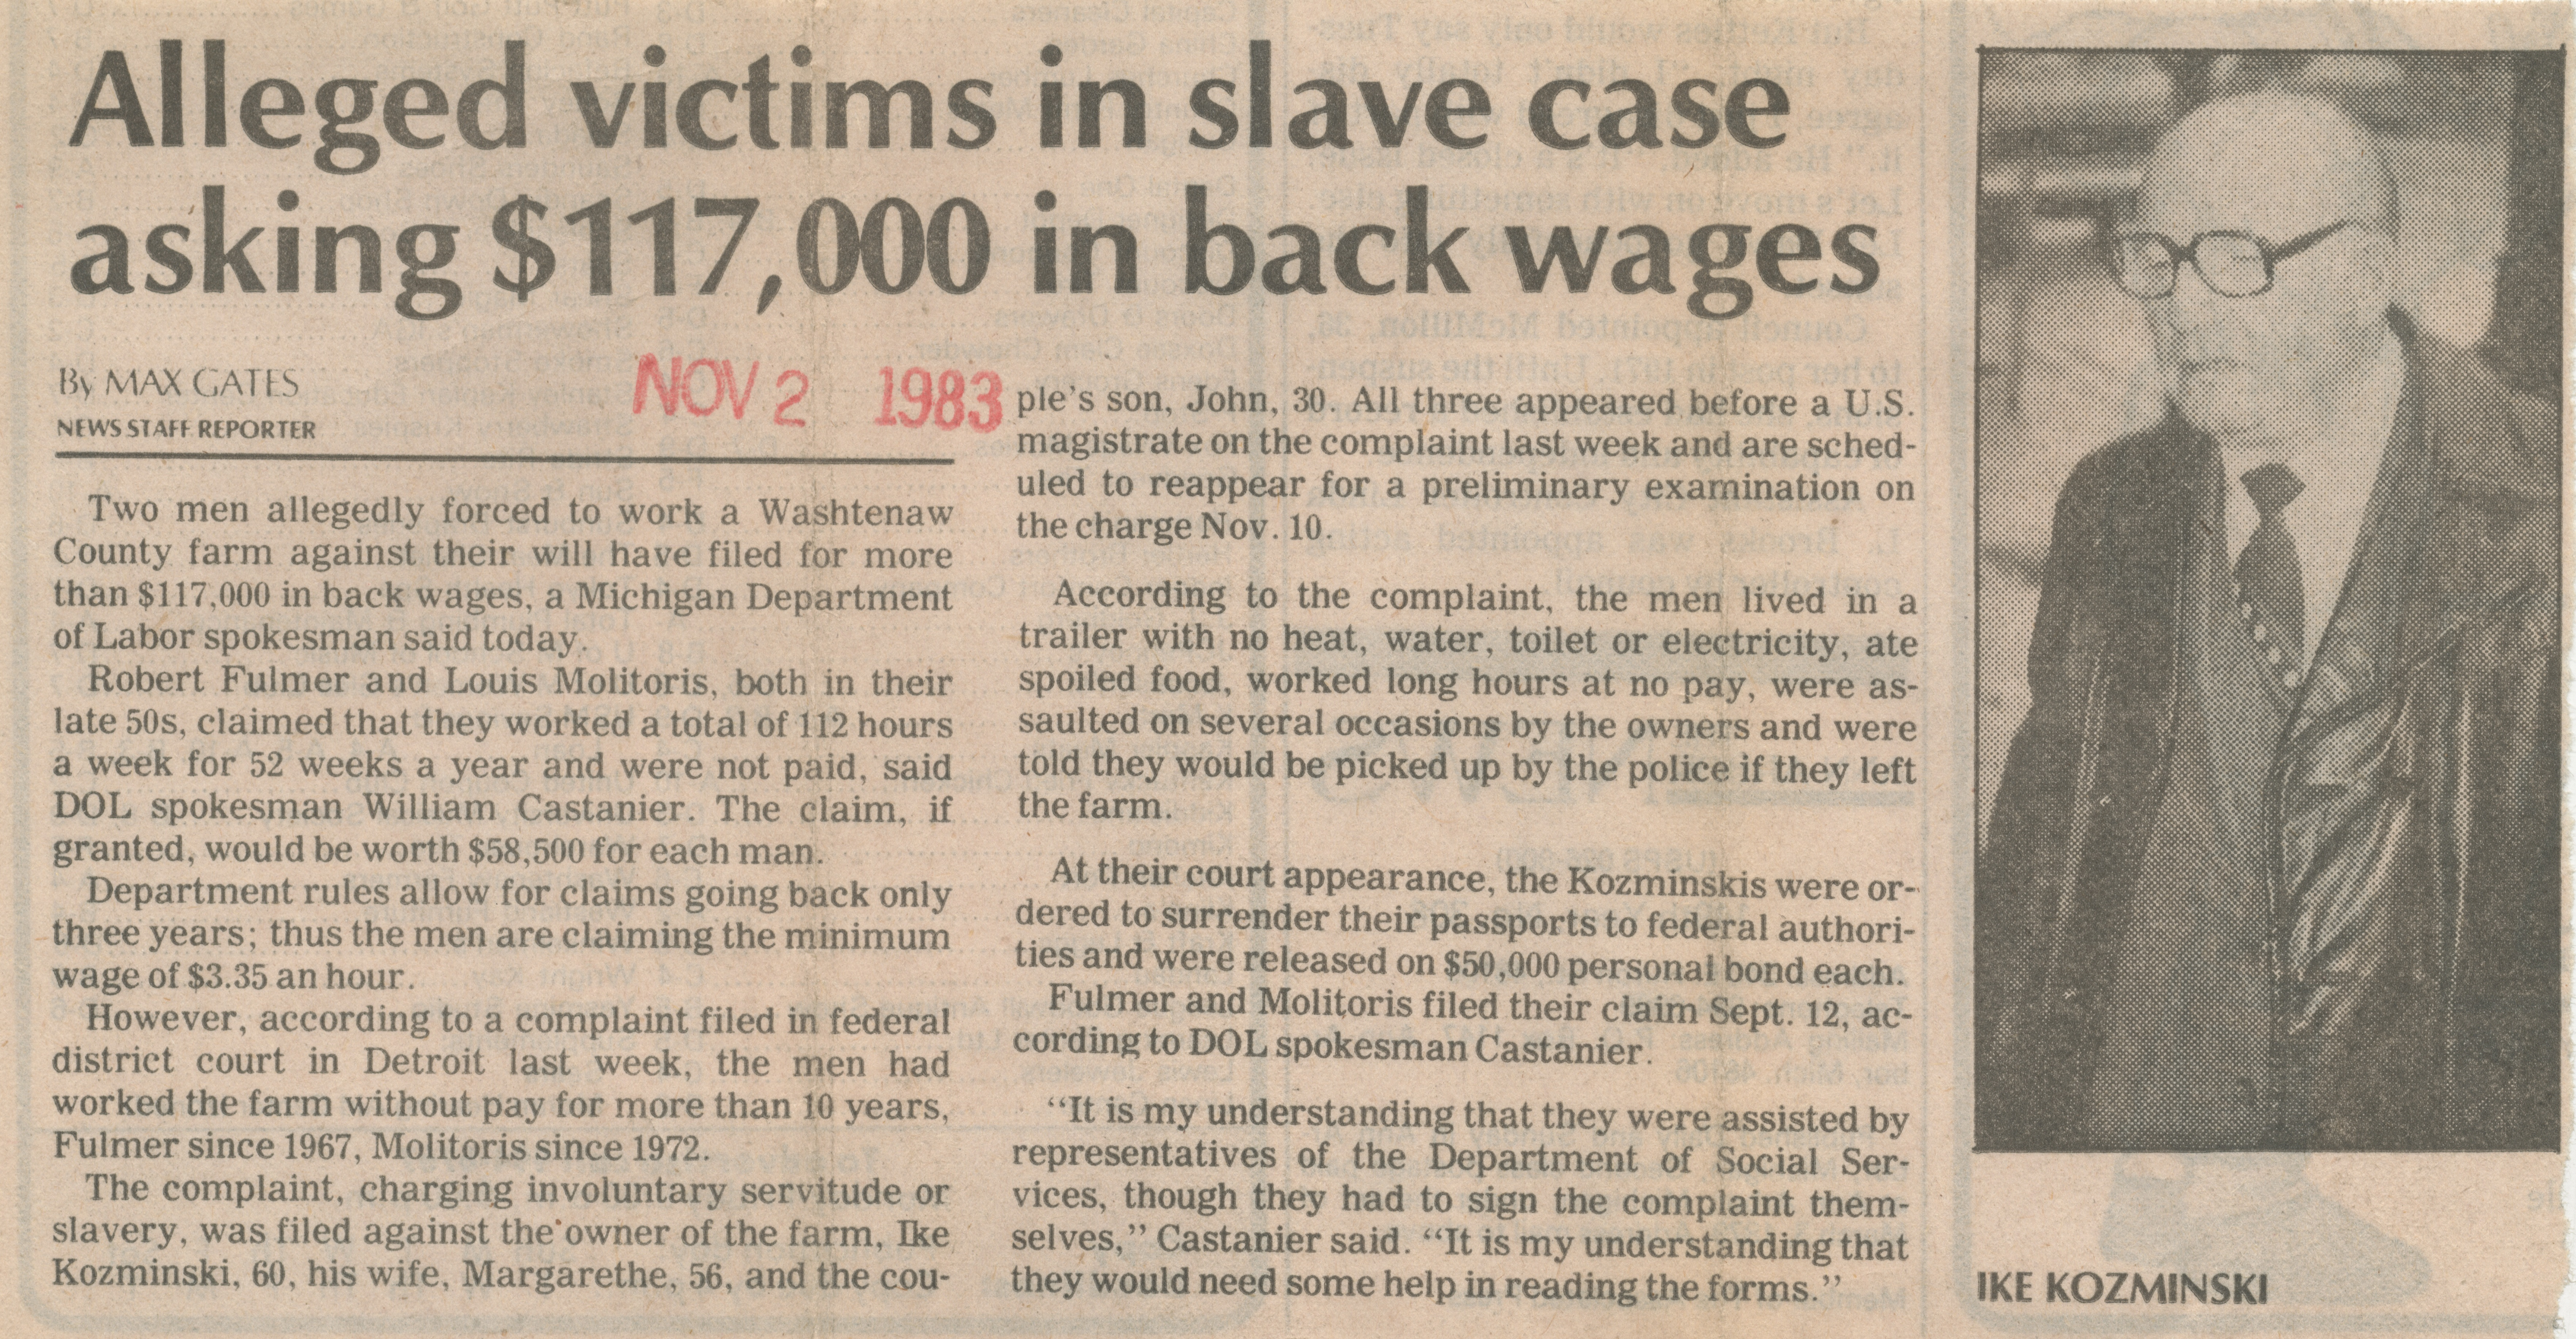 Alleged victims in slave case asking $117,000 in back wages image